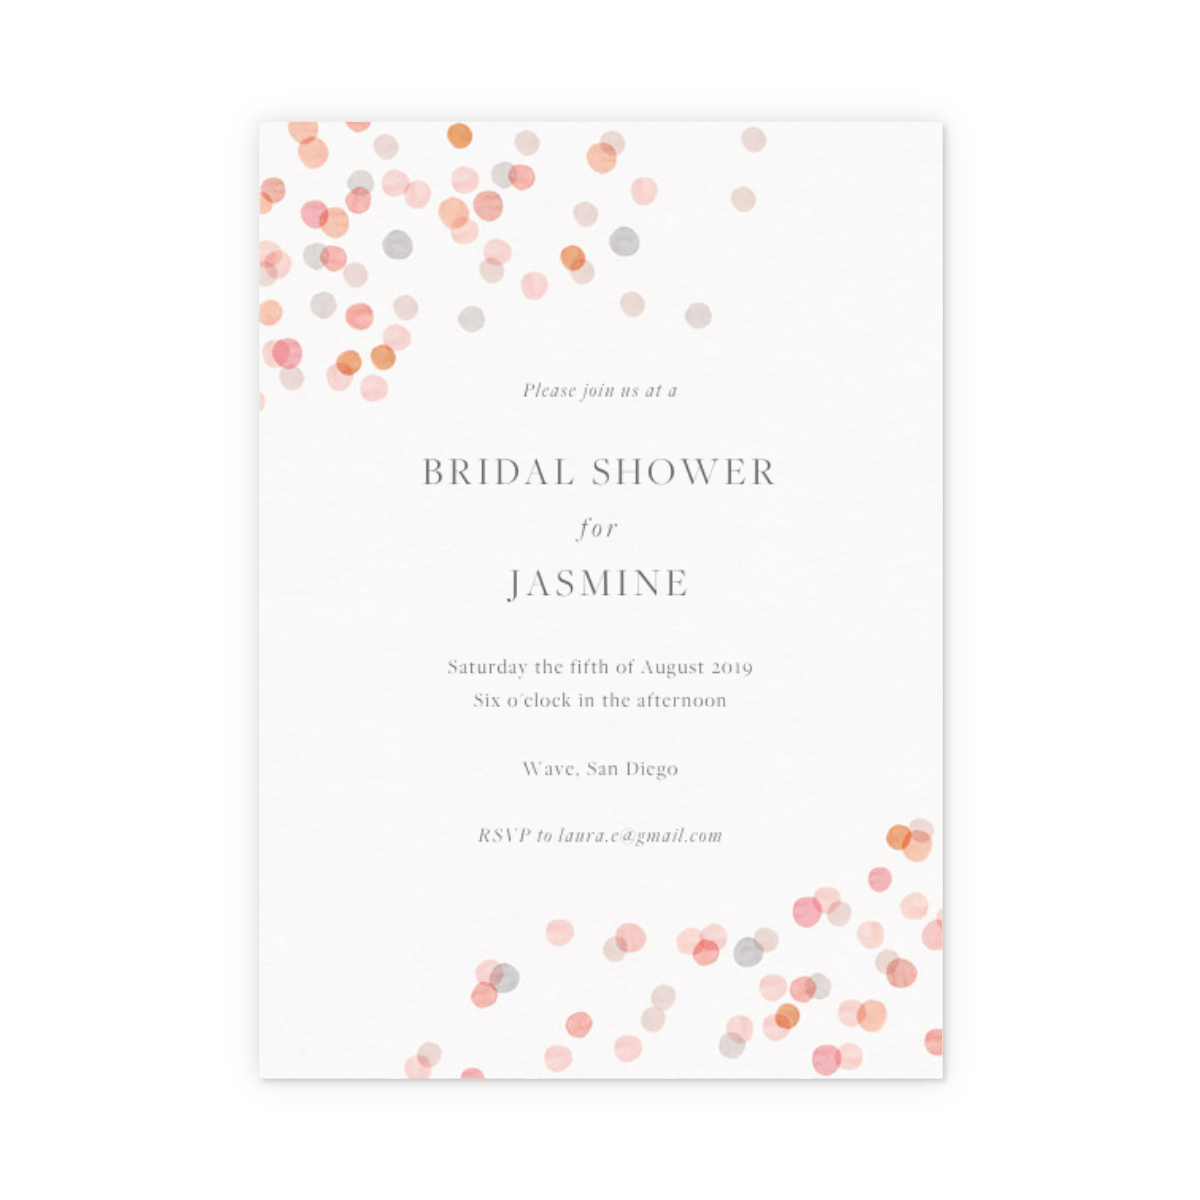 Https%3a%2f%2fwww.papier.com%2fproduct image%2f76982%2f4%2fblush confetti 18067 front 1561561528.png?ixlib=rb 1.1